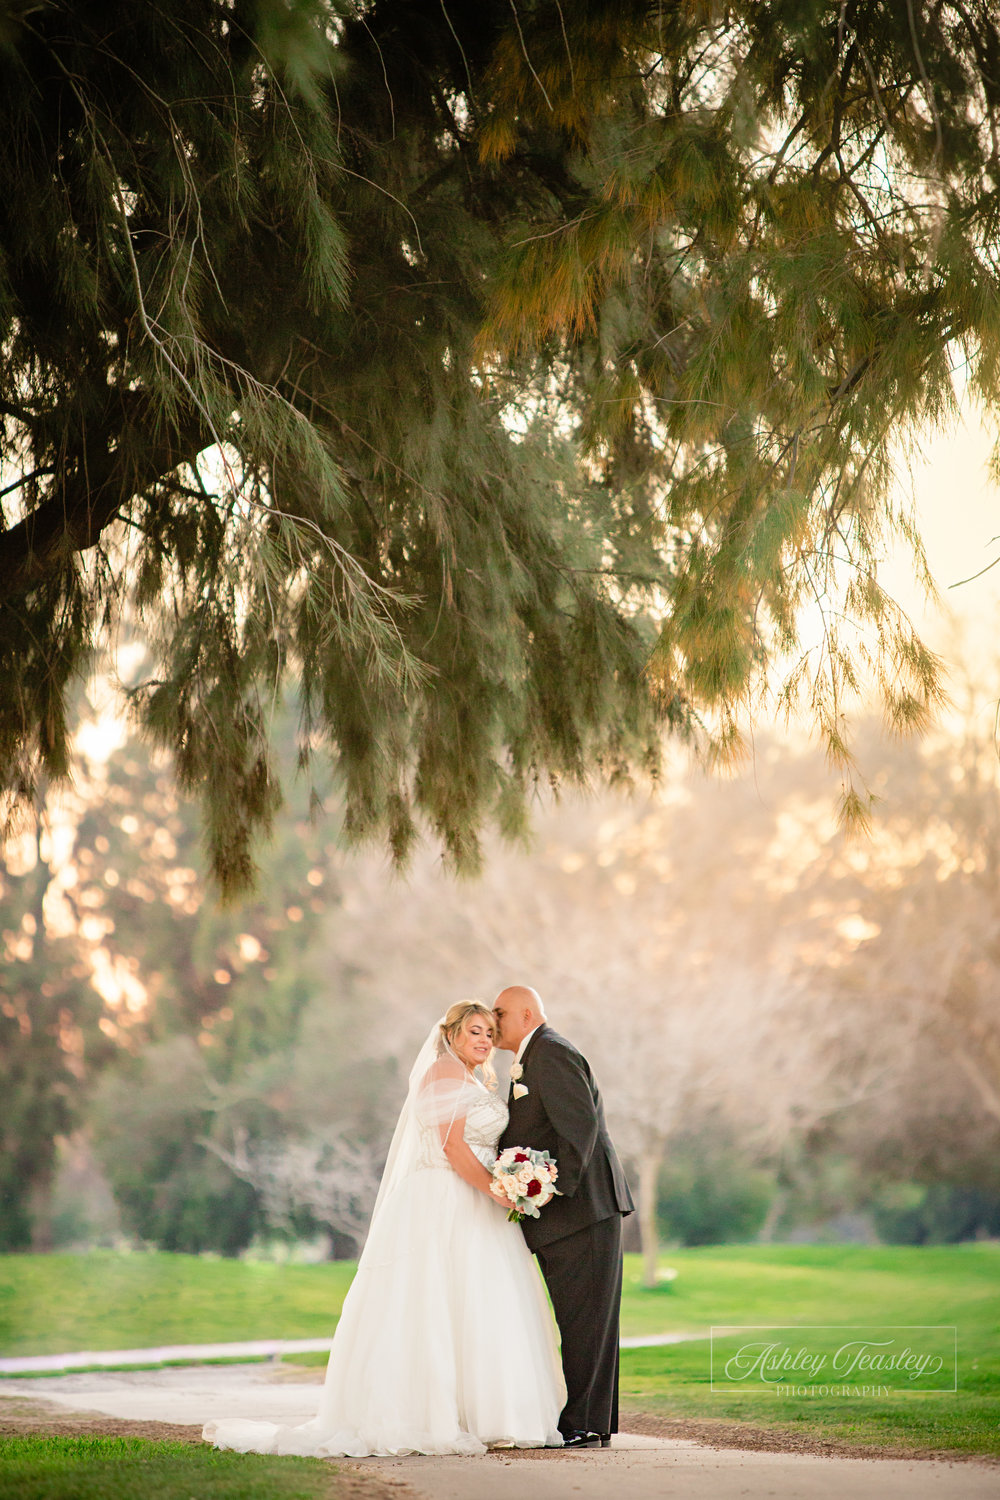 Regina & Mike - The Pavilion at Haggin Oaks -  Sacramento Wedding Photographer - Ashley Teasley Photography (1 of 1).jpg